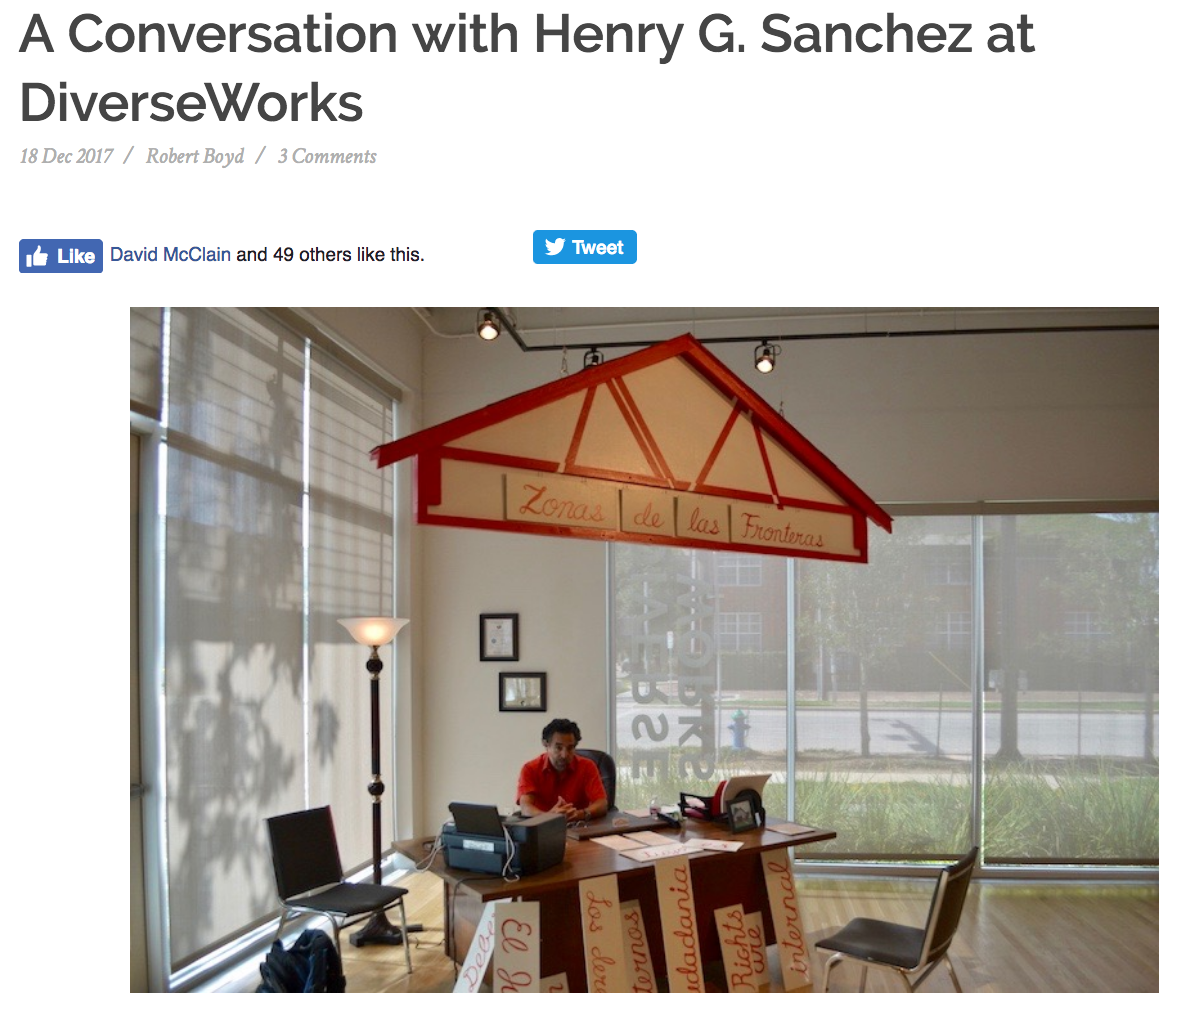 http://glasstire.com/2017/12/18/a-conversation-with-henry-g-sanchez-at-diverseworks/?utm_medium=email&utm_campaign=Tuesday+Newsletter+12-19-17&utm_content=Tuesday+Newsletter+12-19-17+CID_bac015abab5f5ee9f942f12fb1b3fe39&utm_source=Email+marketing+software&utm_term=A+Conversation+with+Henry+G+Sanchez+at+DiverseWorks